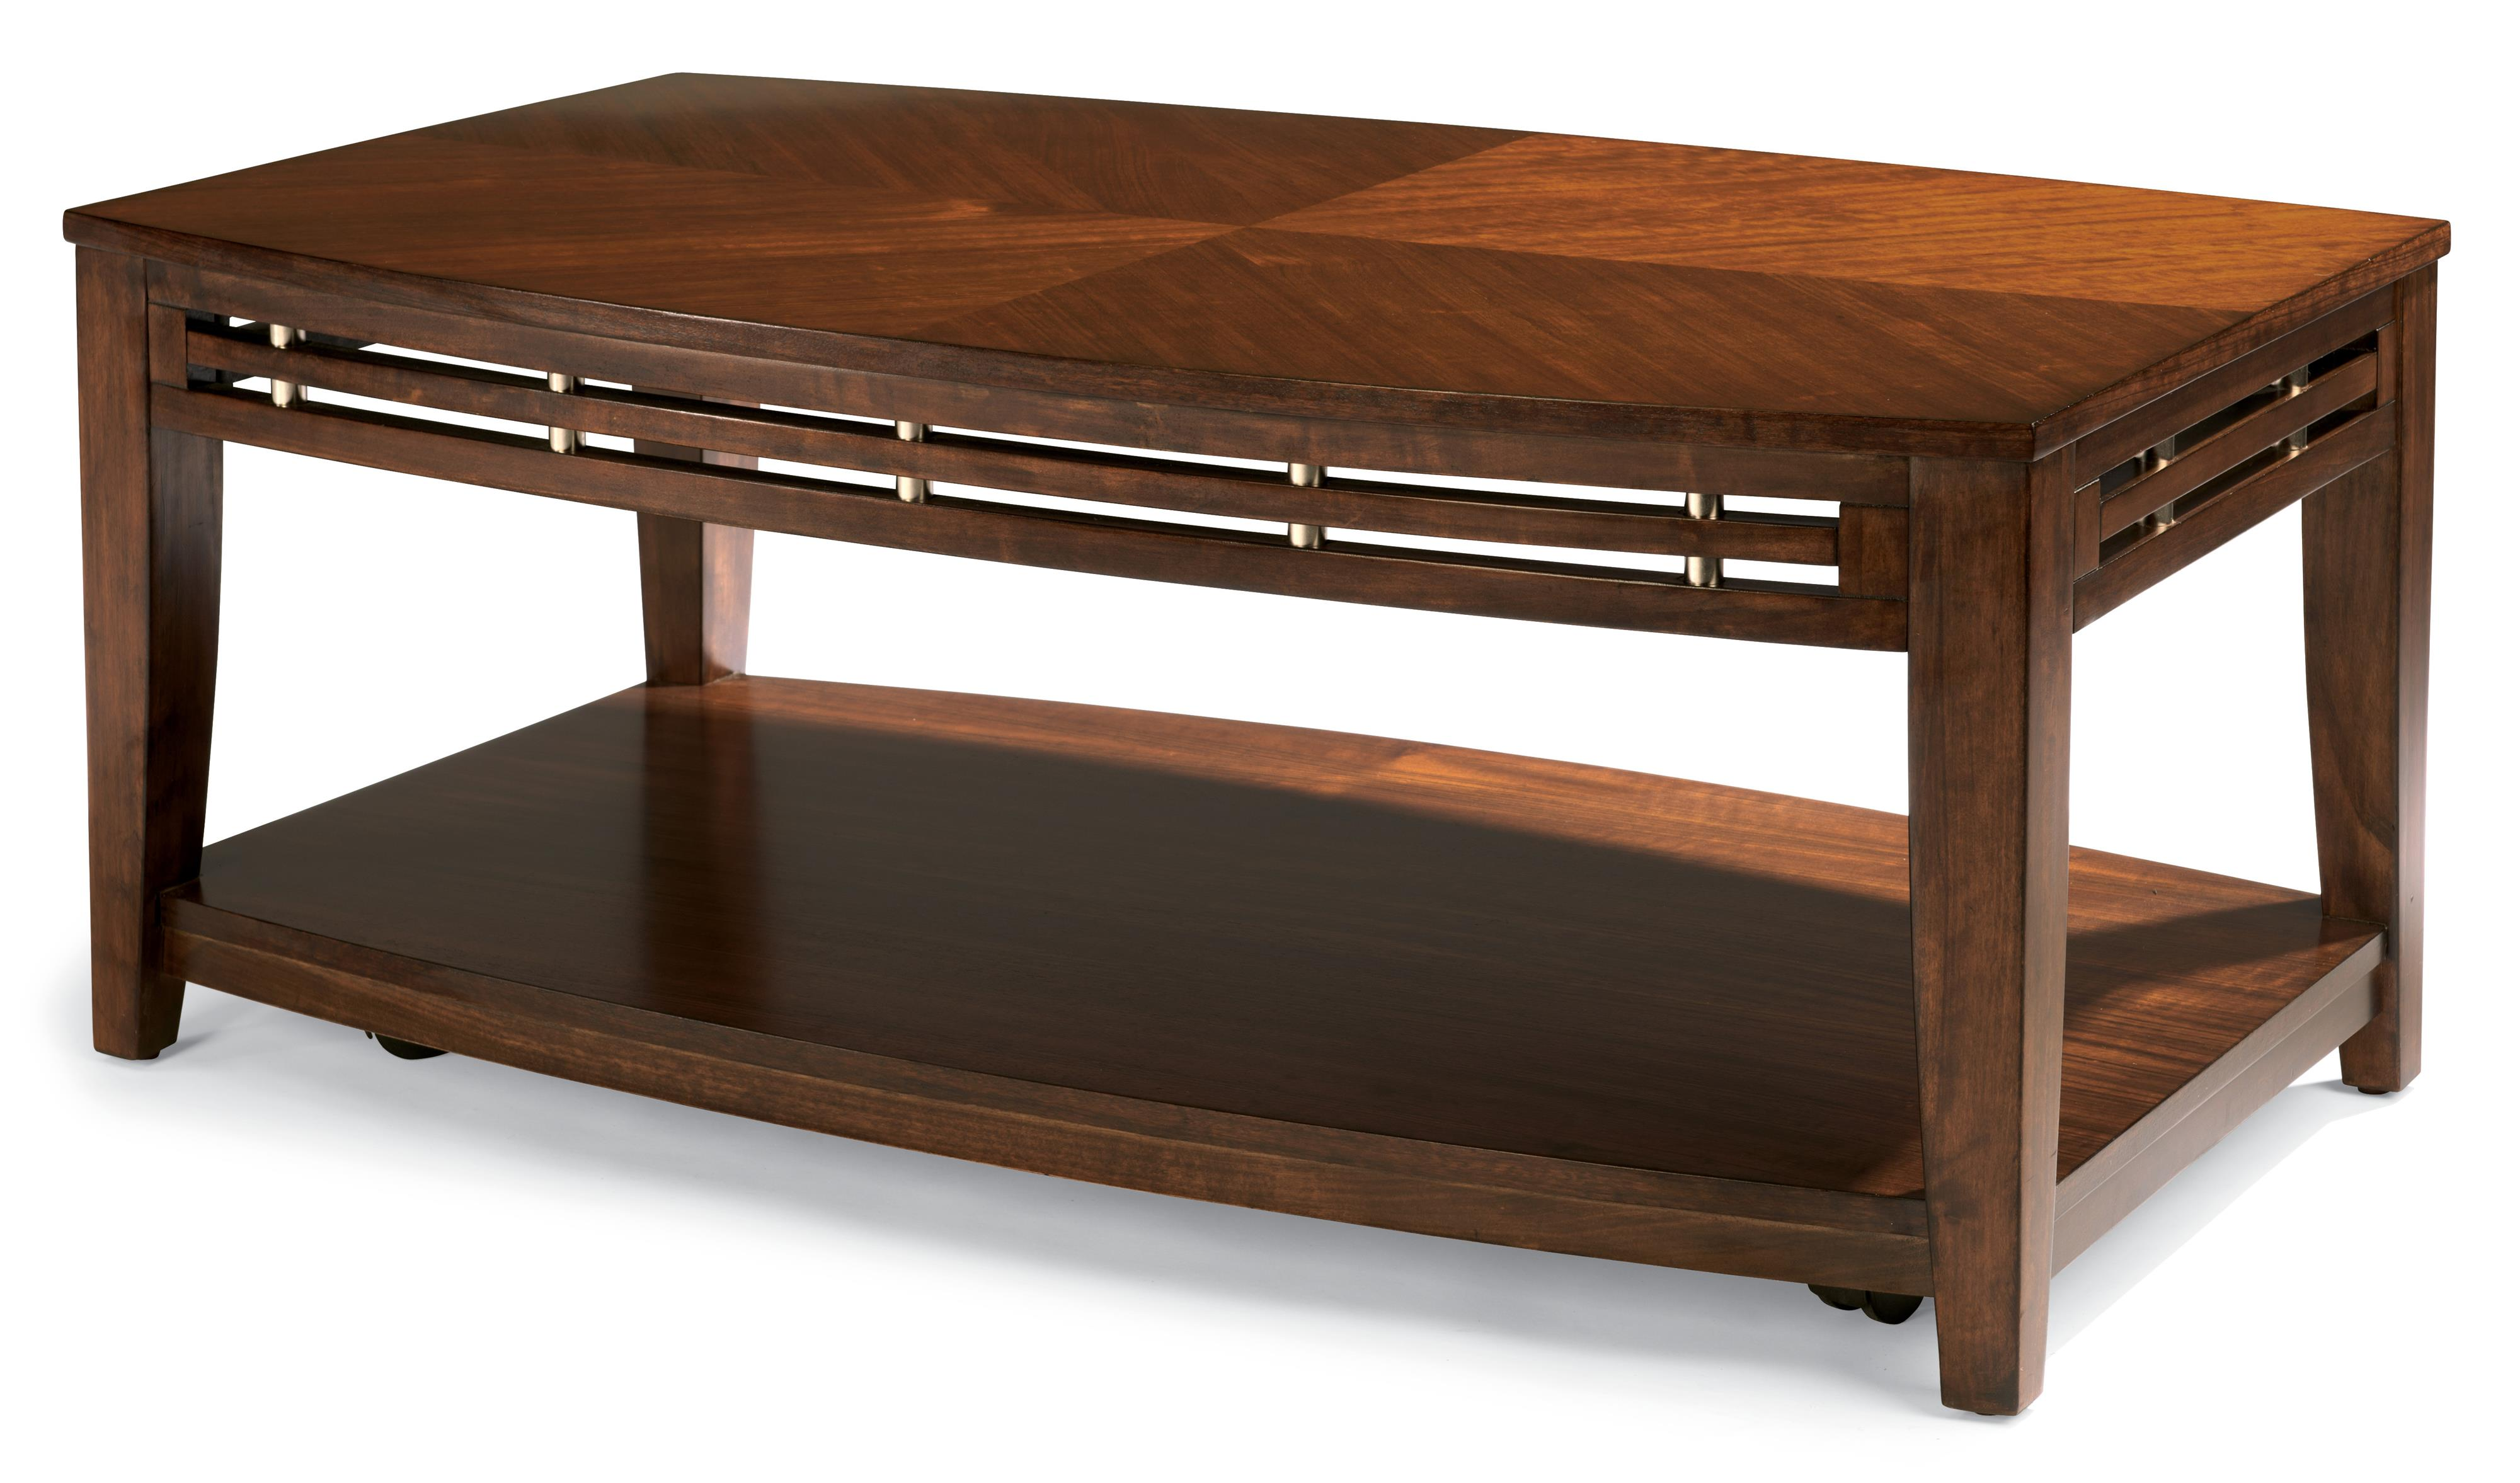 Flexsteel Bali Rect Cocktail Table w/ casters - Item Number: W1409-0311